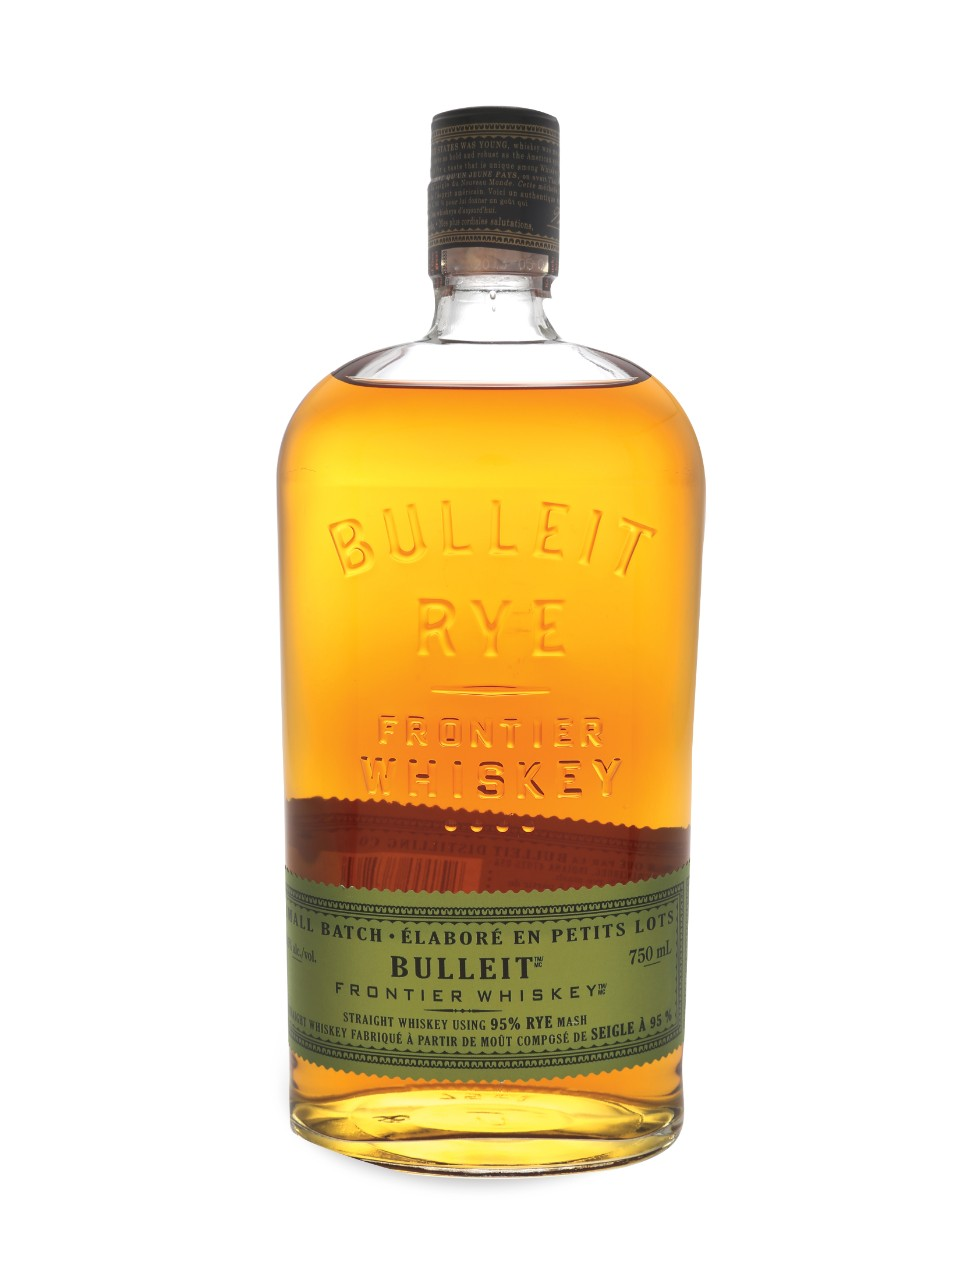 Rye Straight Whiskey Bulleit